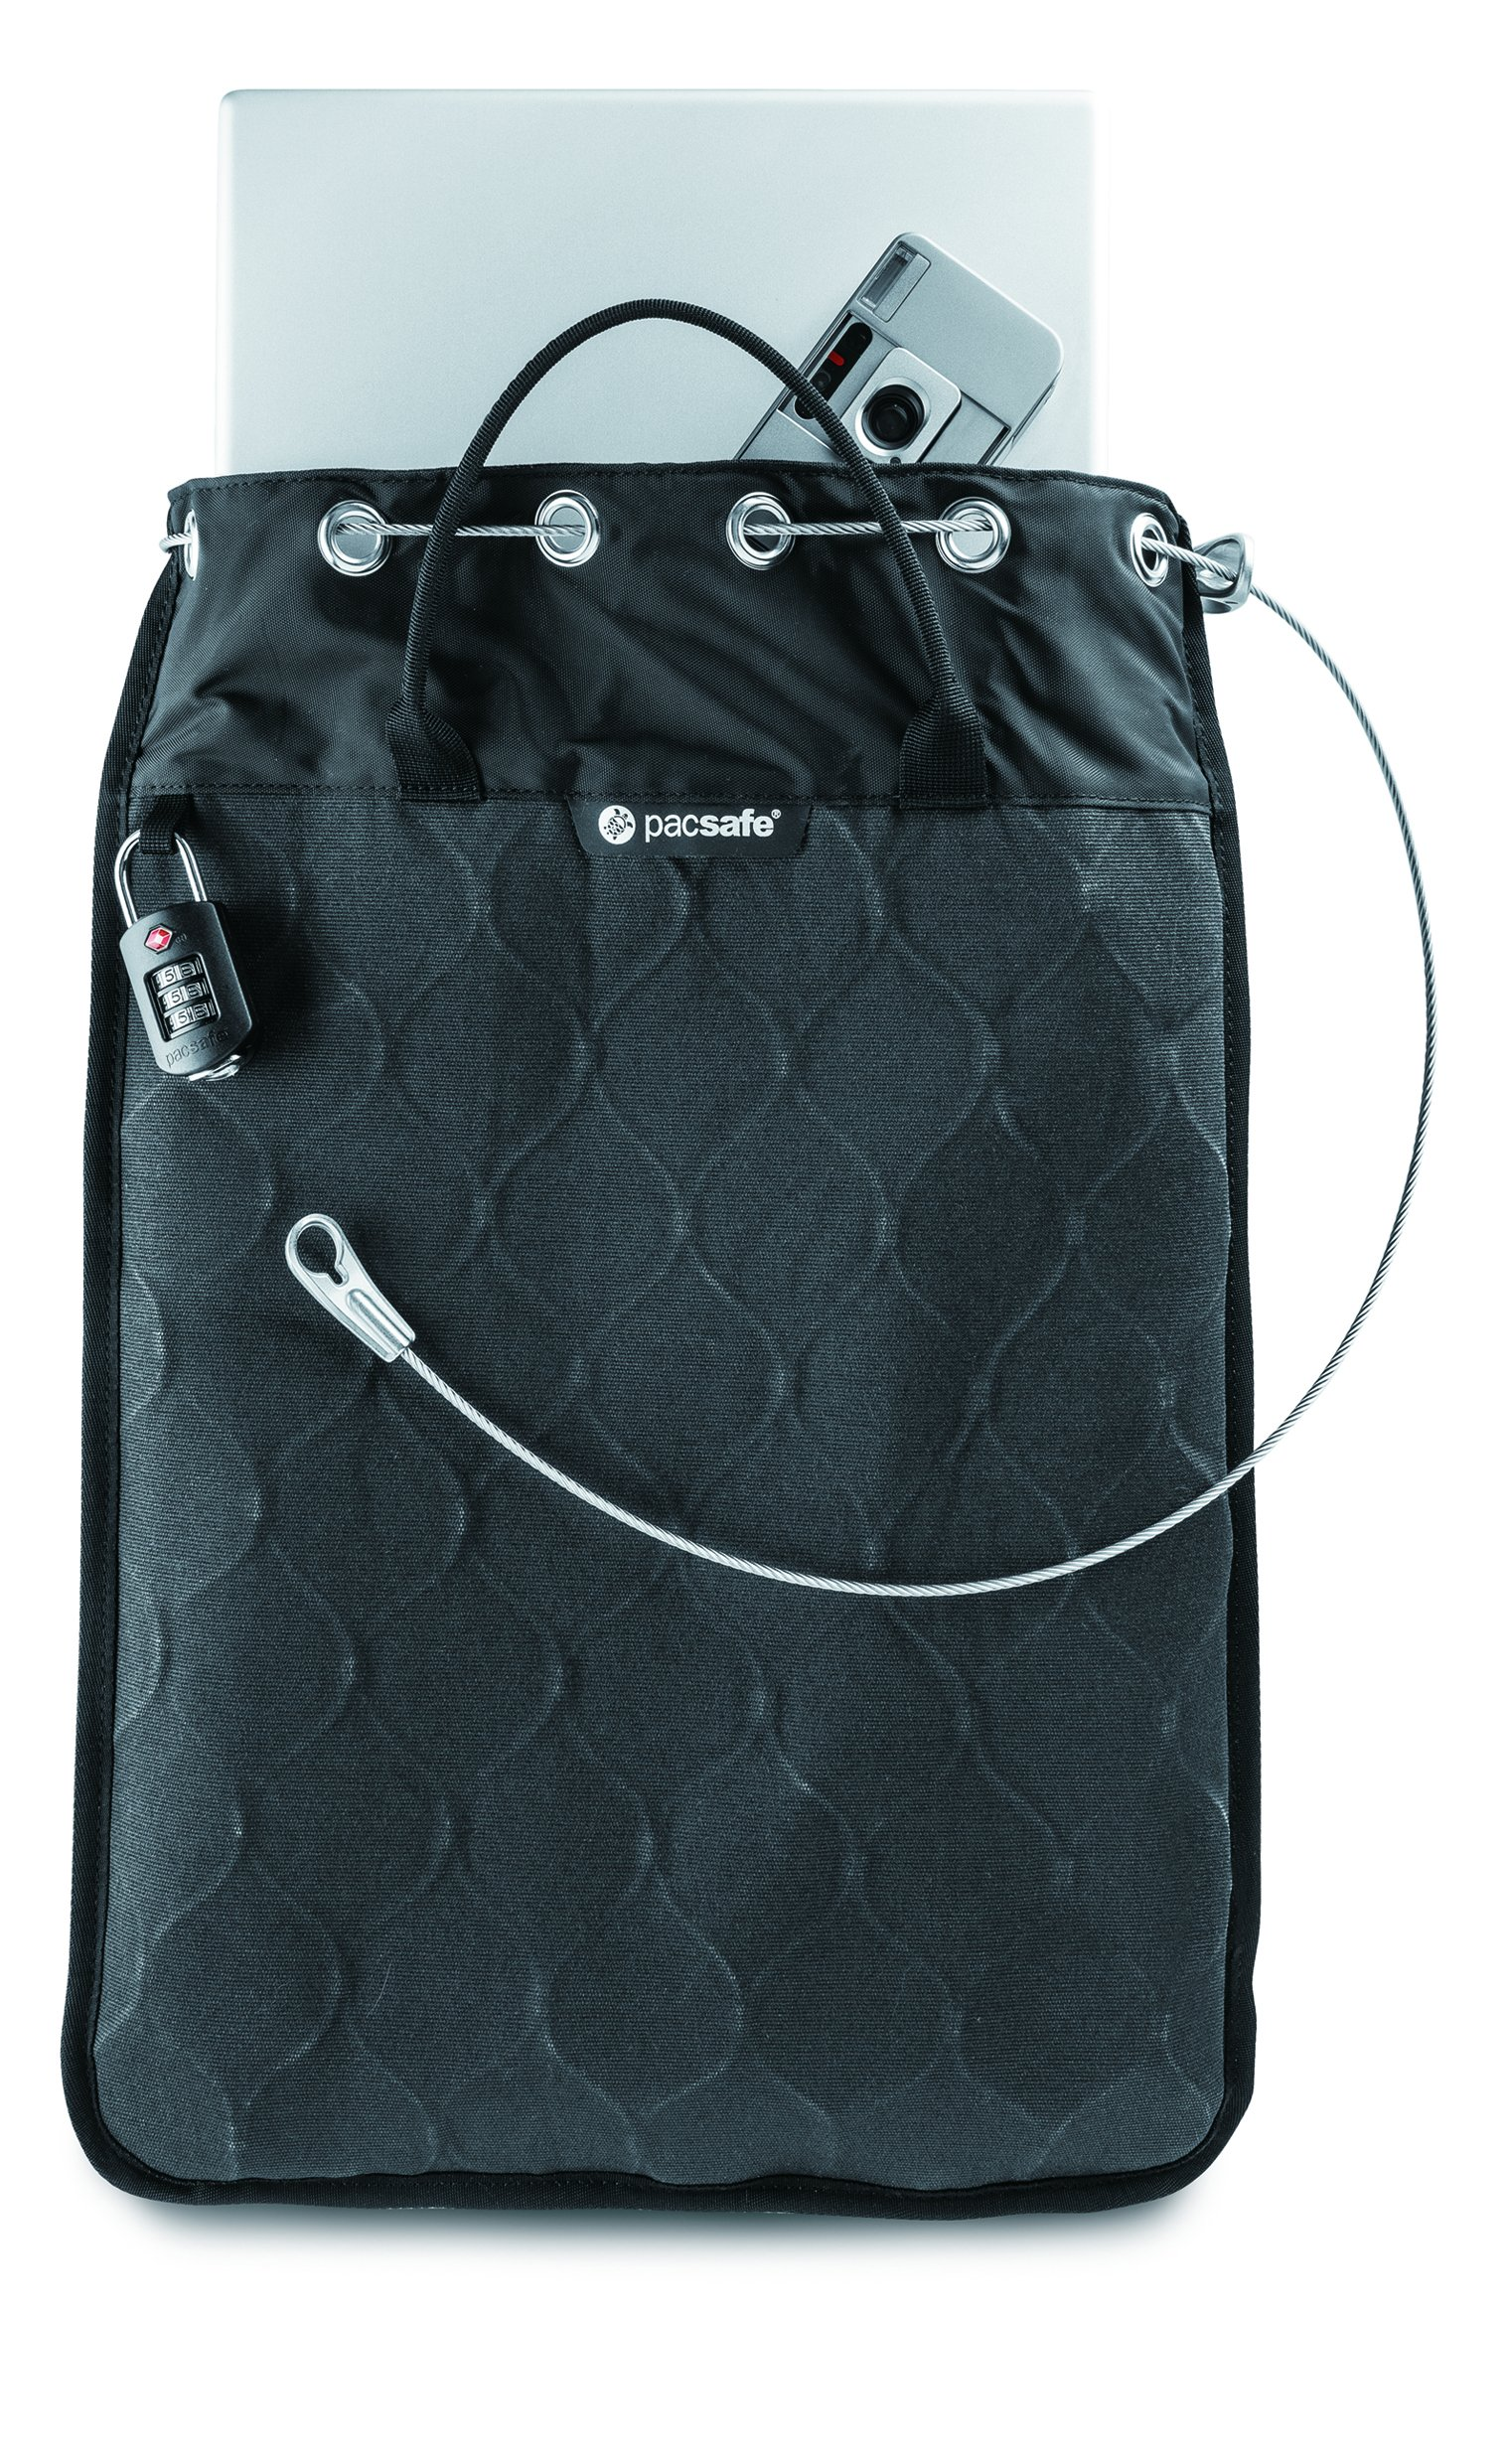 Pacsafe Travelsafe 12L GII Portable Safe, Charcoal by Pacsafe (Image #10)